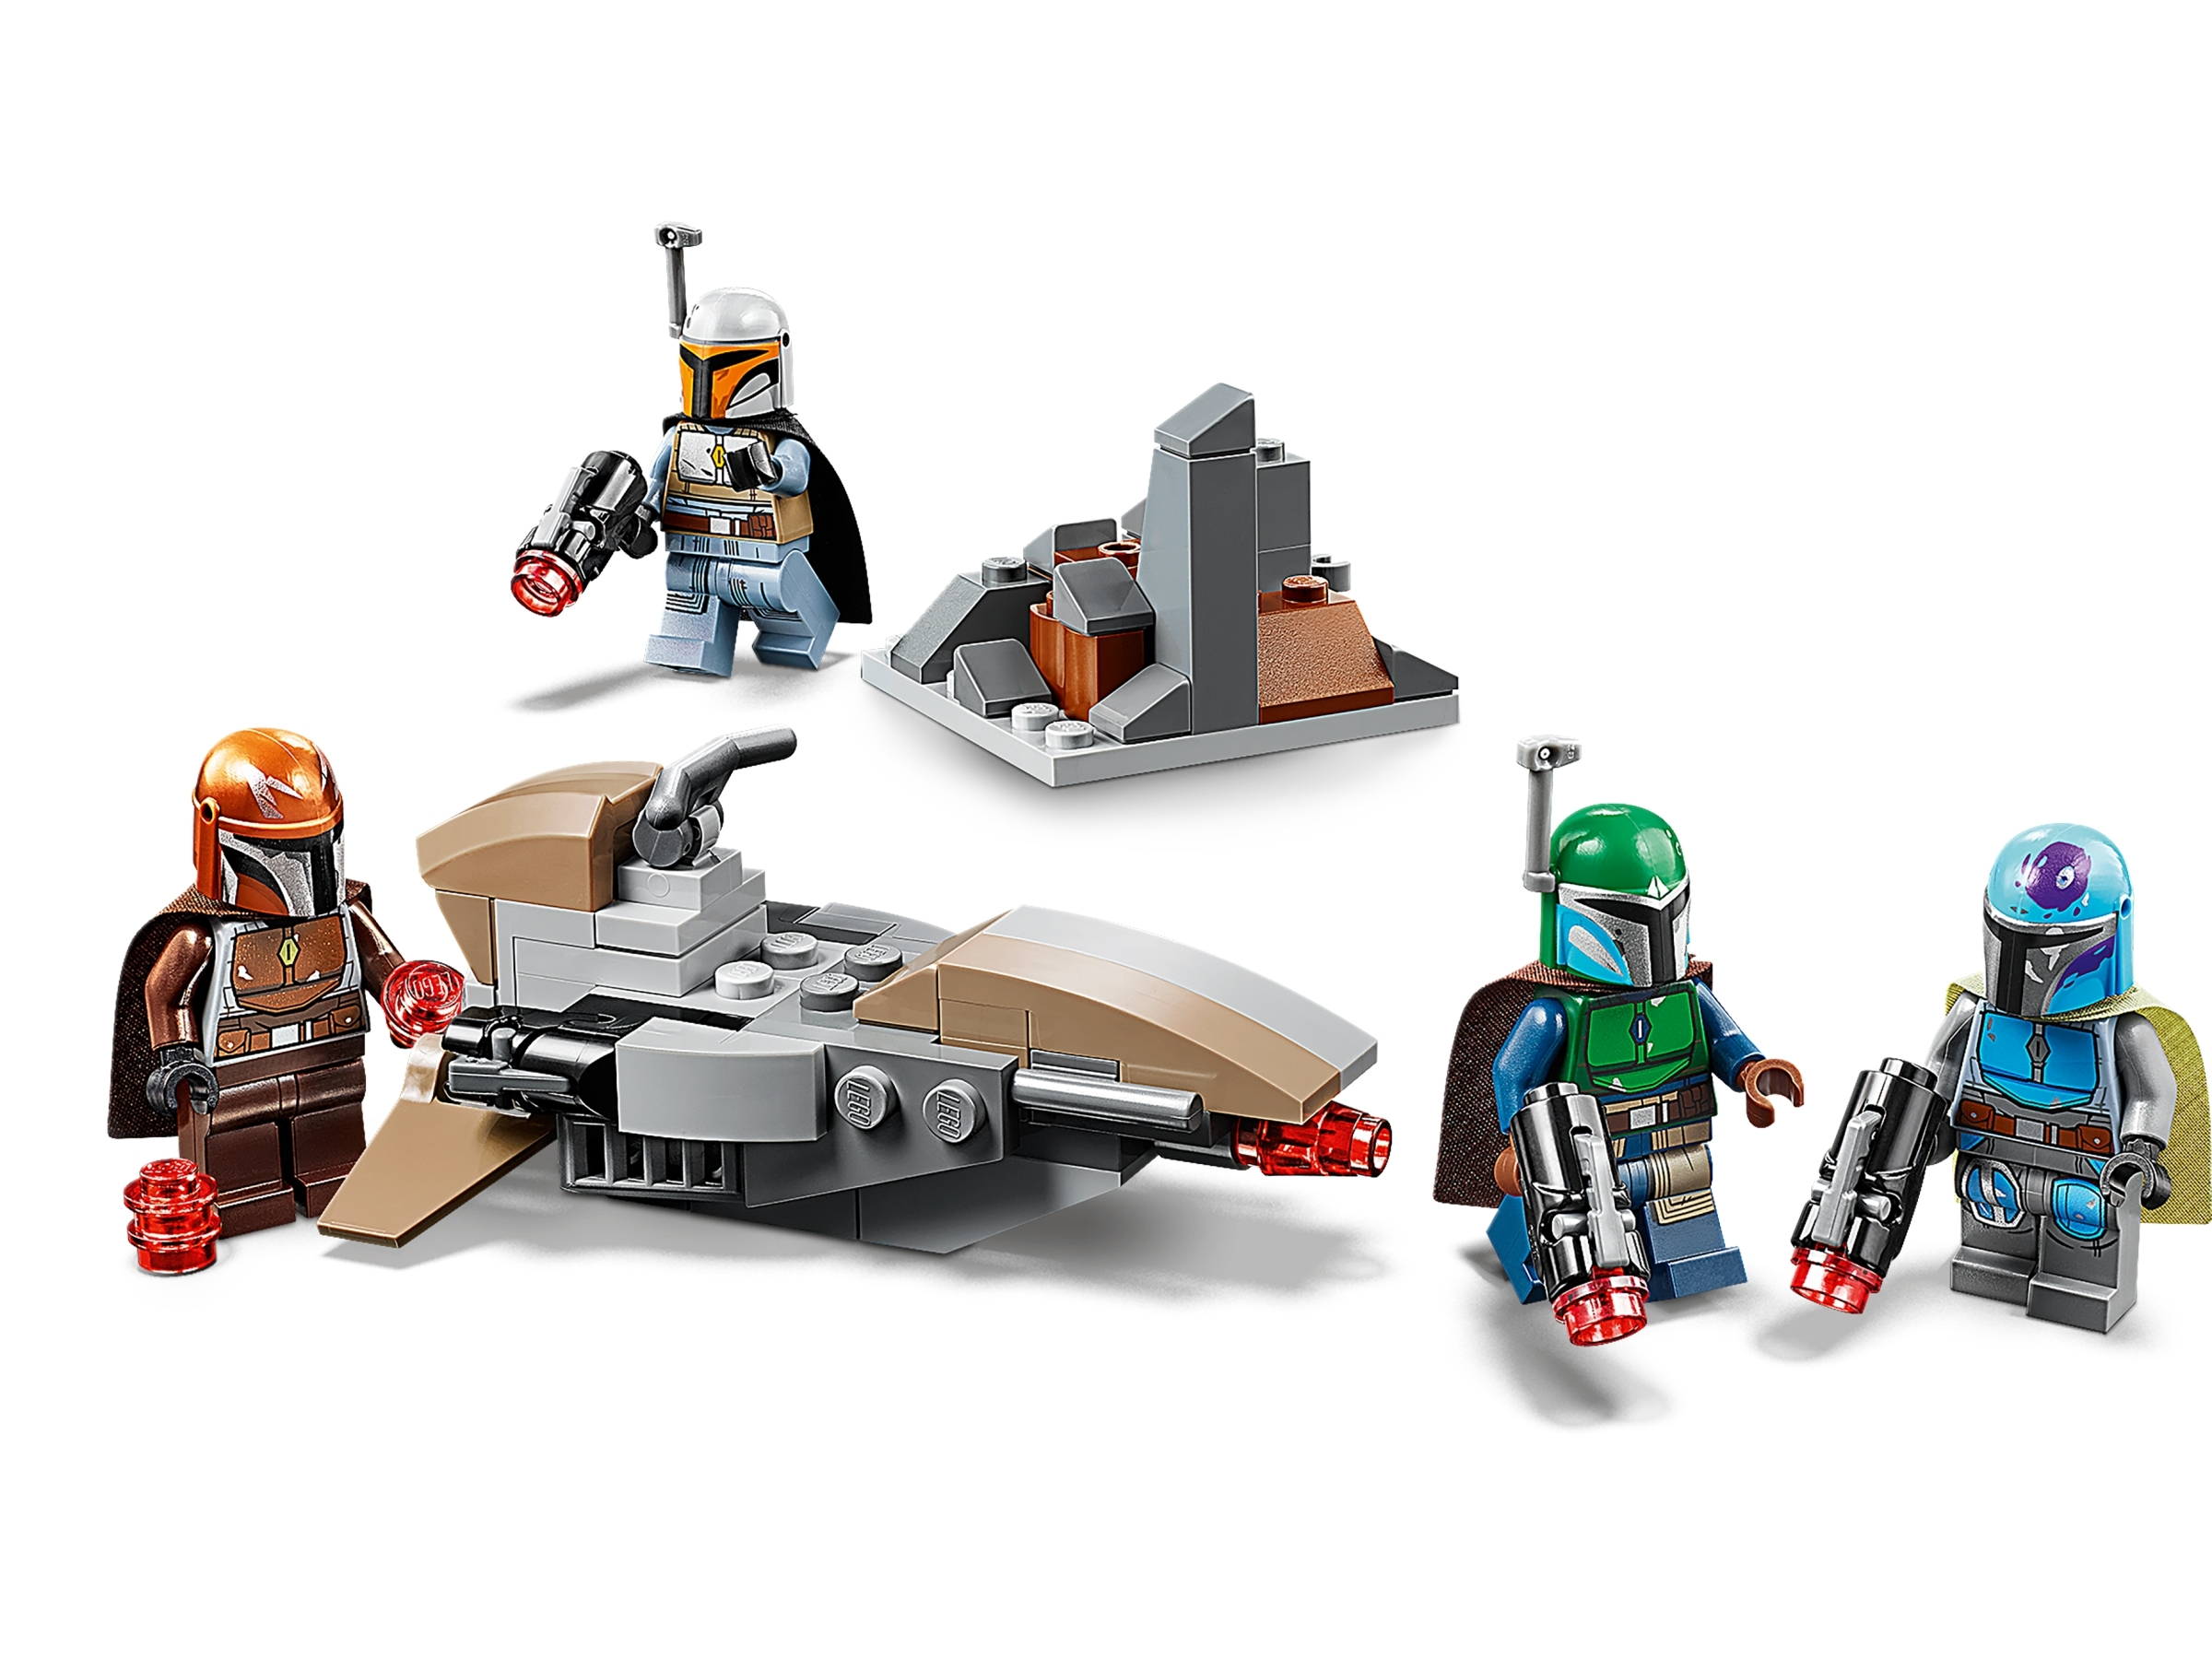 LEGO 75267 New Star Wars Mandalorian Battle Pack Set with 4 Minifigures